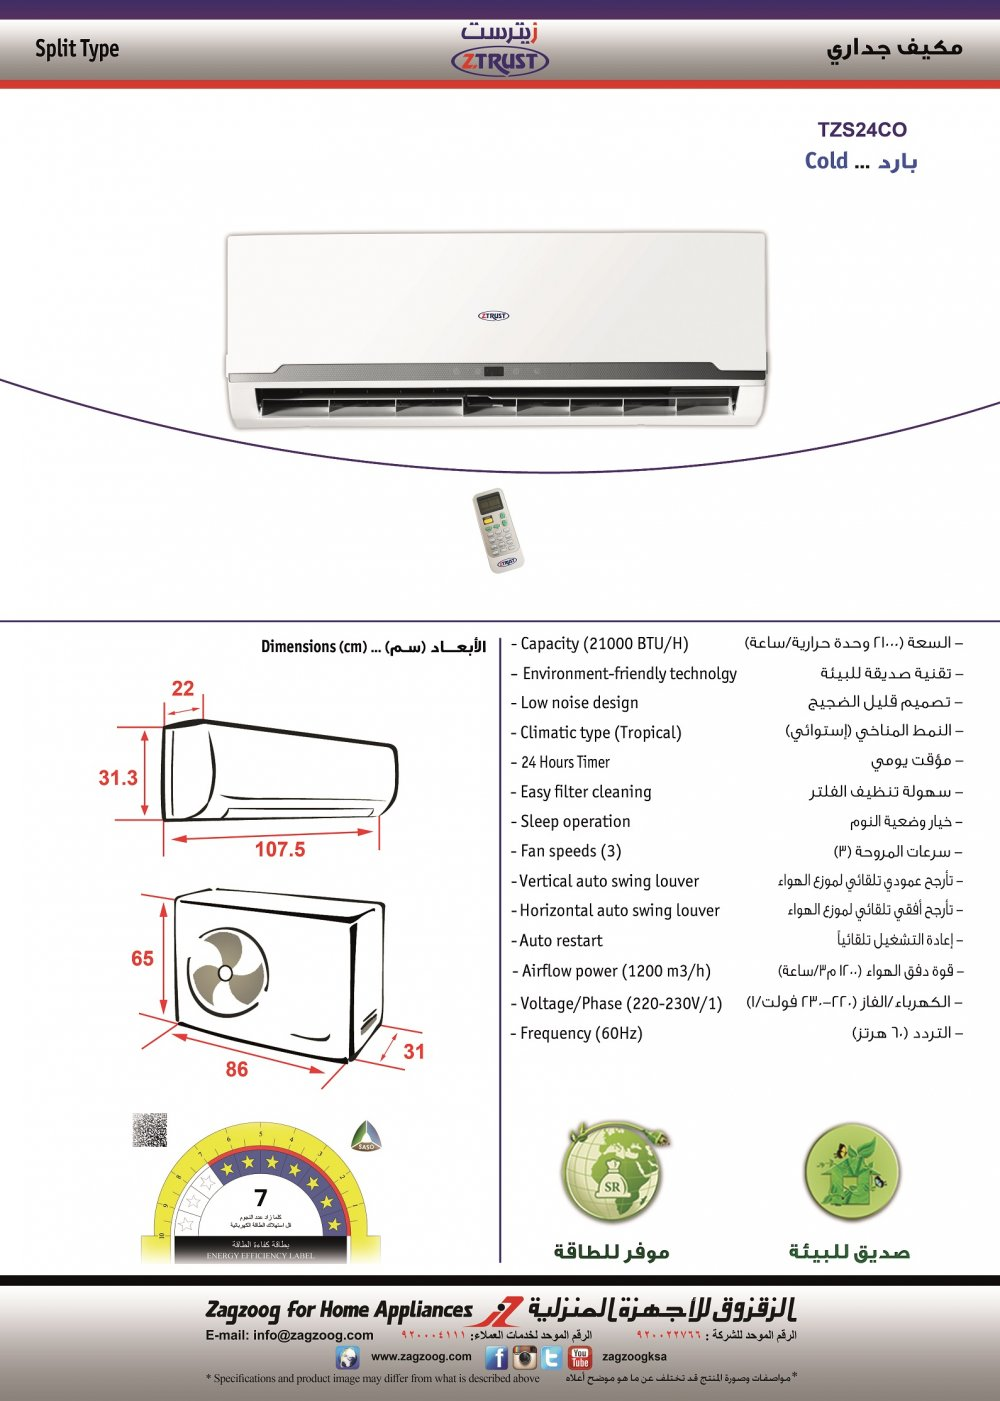 Wall Mounted Z.TRUST A/C Cold, (21000) BTU